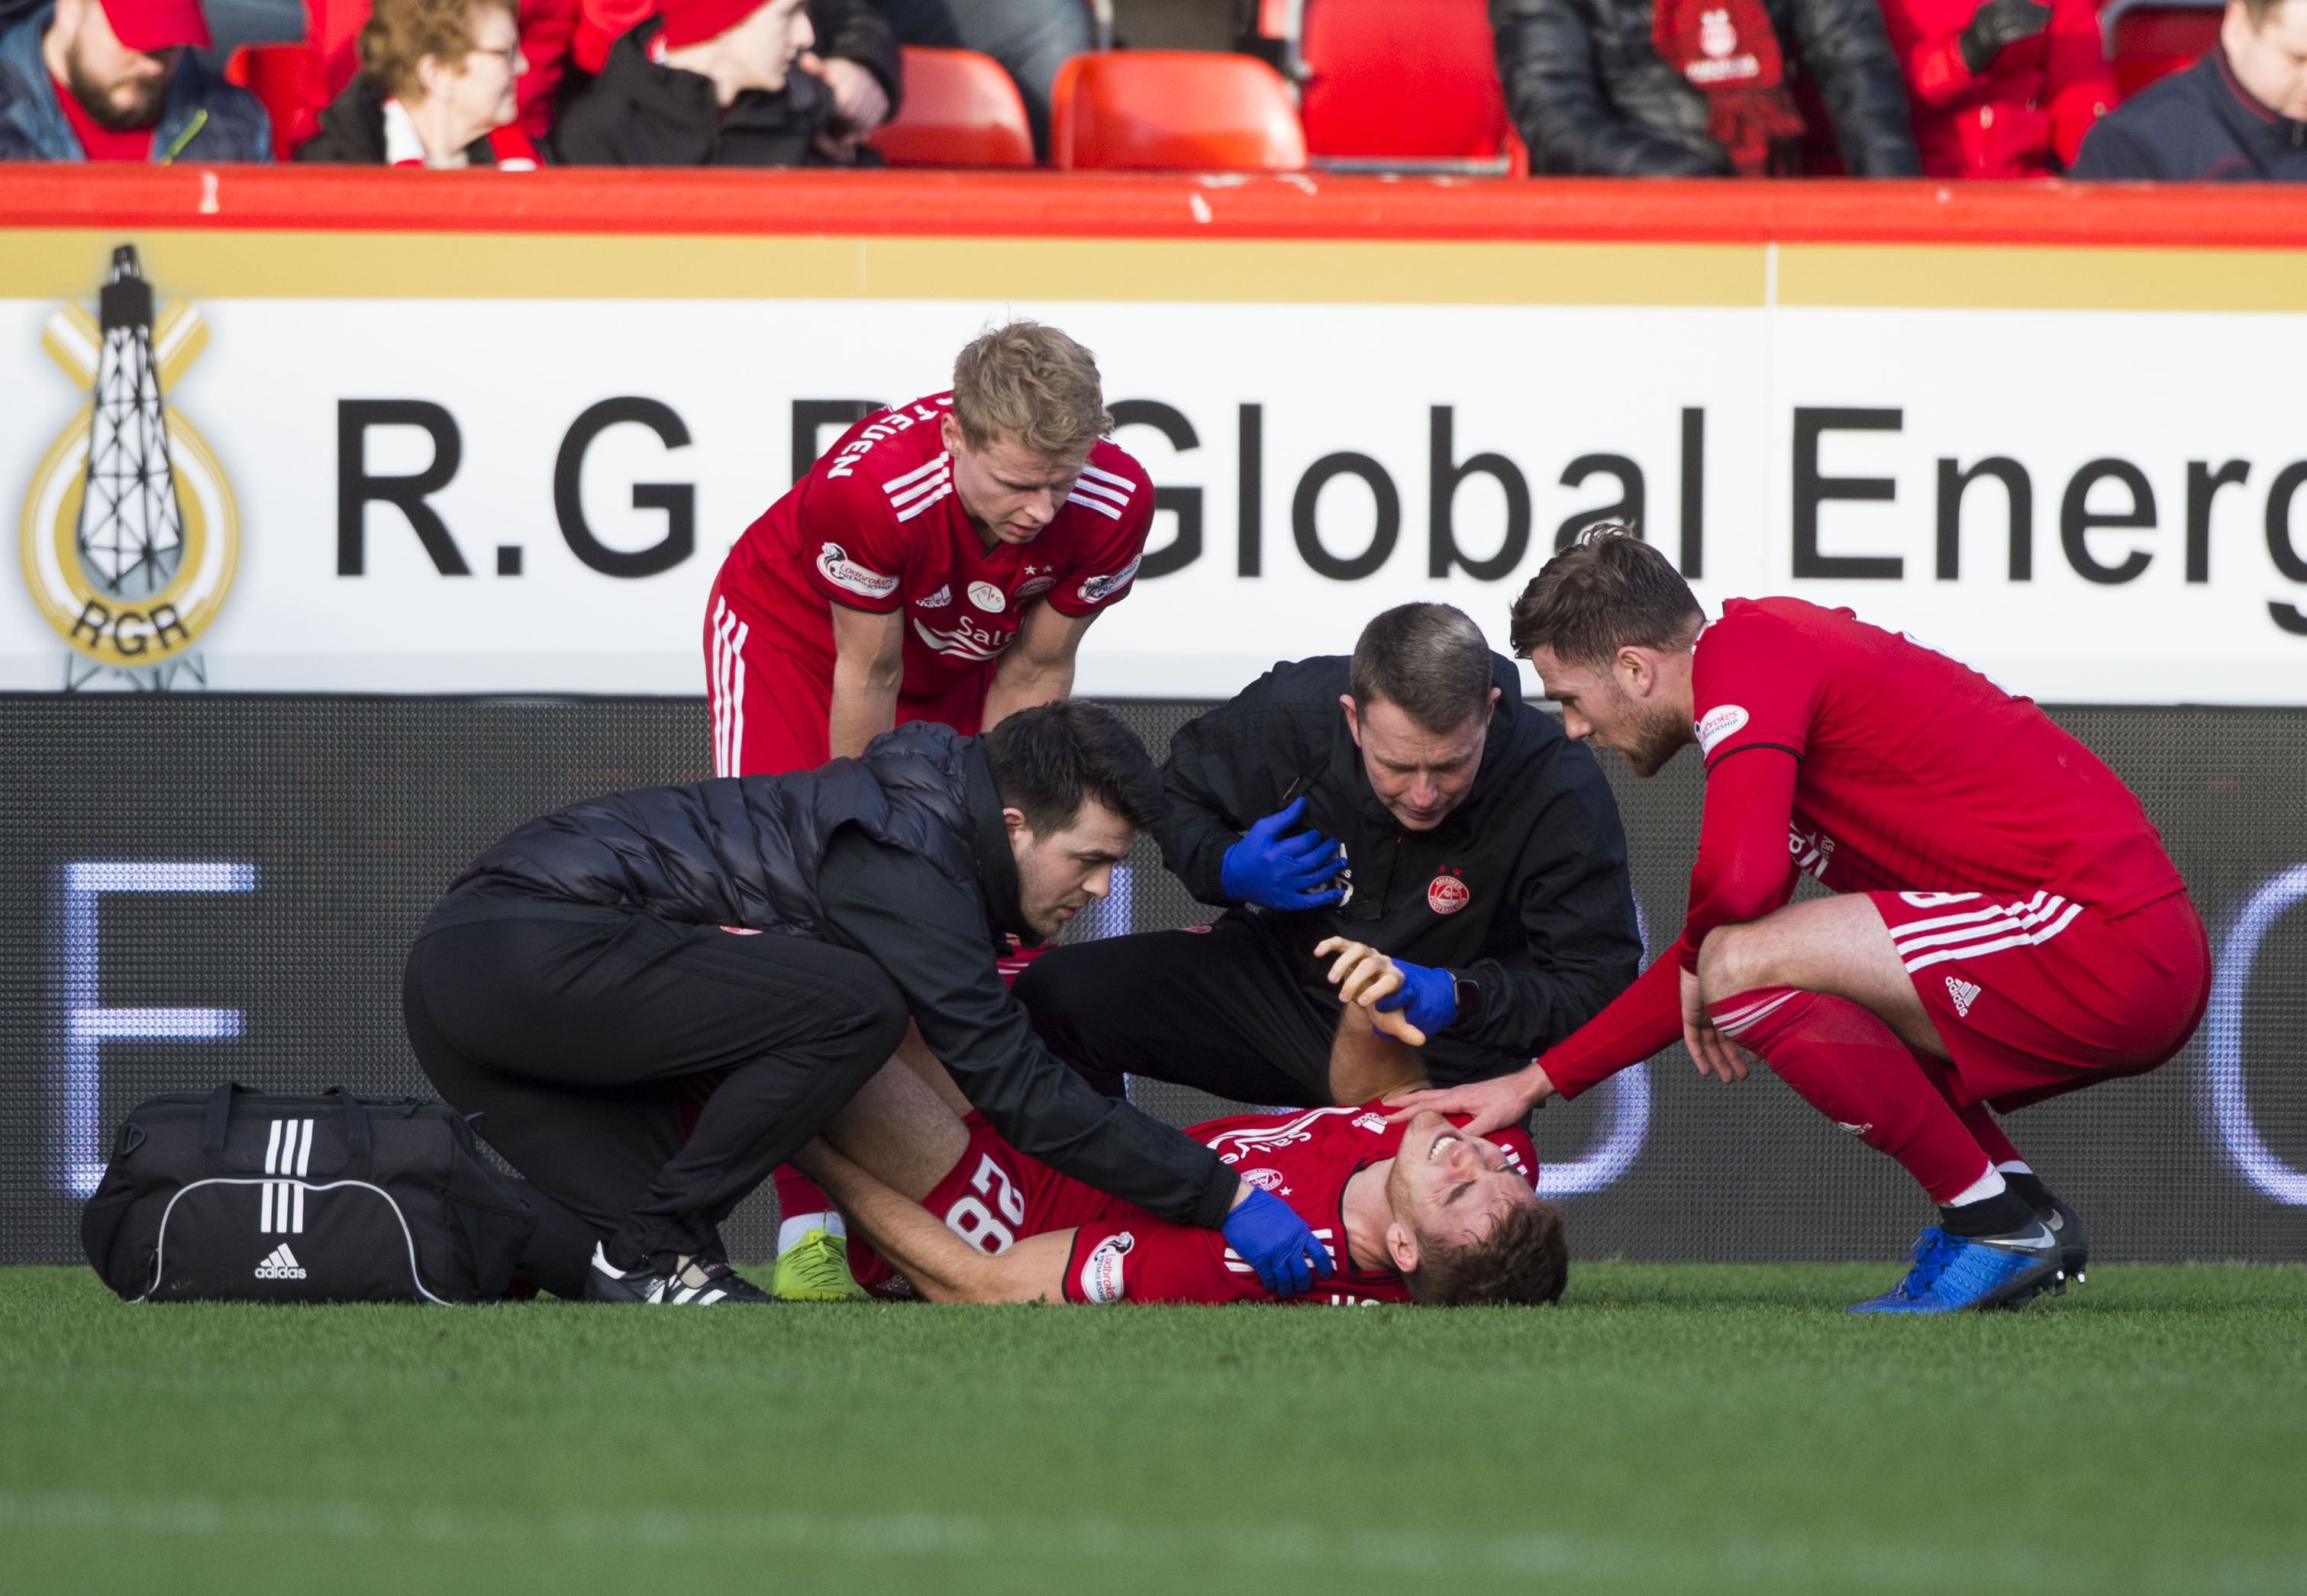 Aberdeen's Tommie Hoban is treated for his injury on the Pittodrie pitch.